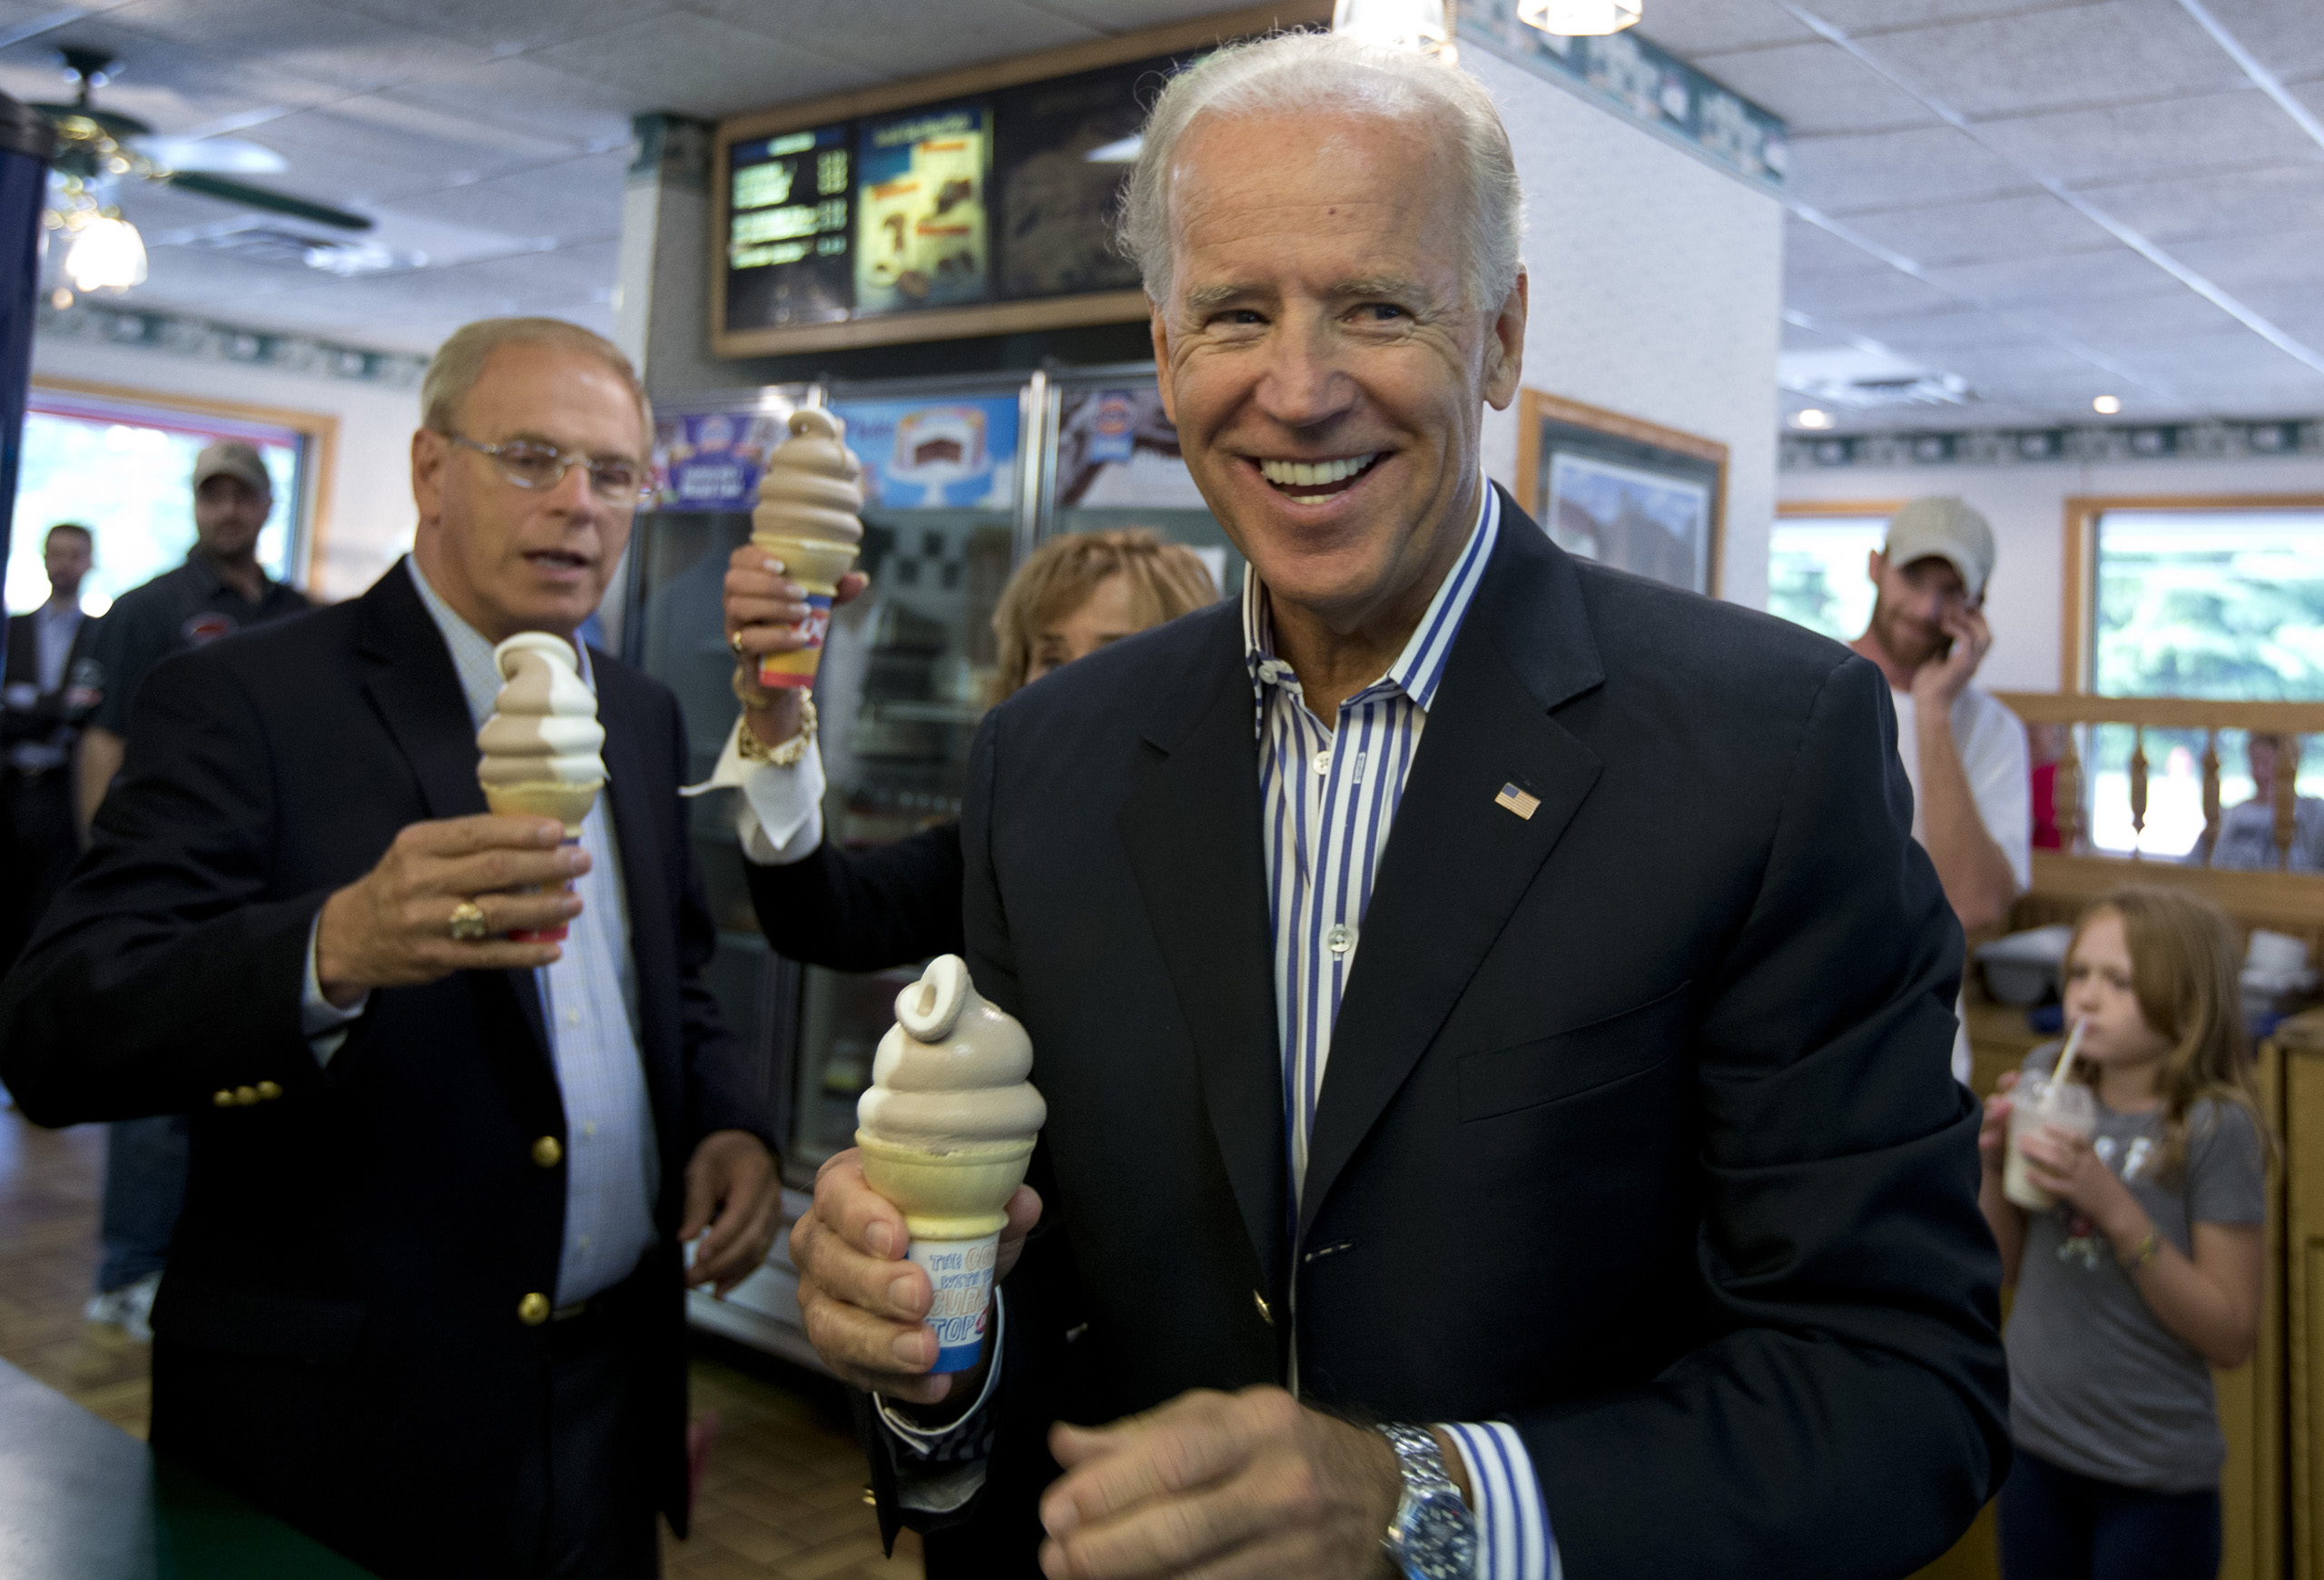 Vice President Joe Biden stops for an ice cream cone at a Dairy Queen with former Ohio Gov. Ted Strickland in Nelsonville, Ohio on Sept. 8, 2012.